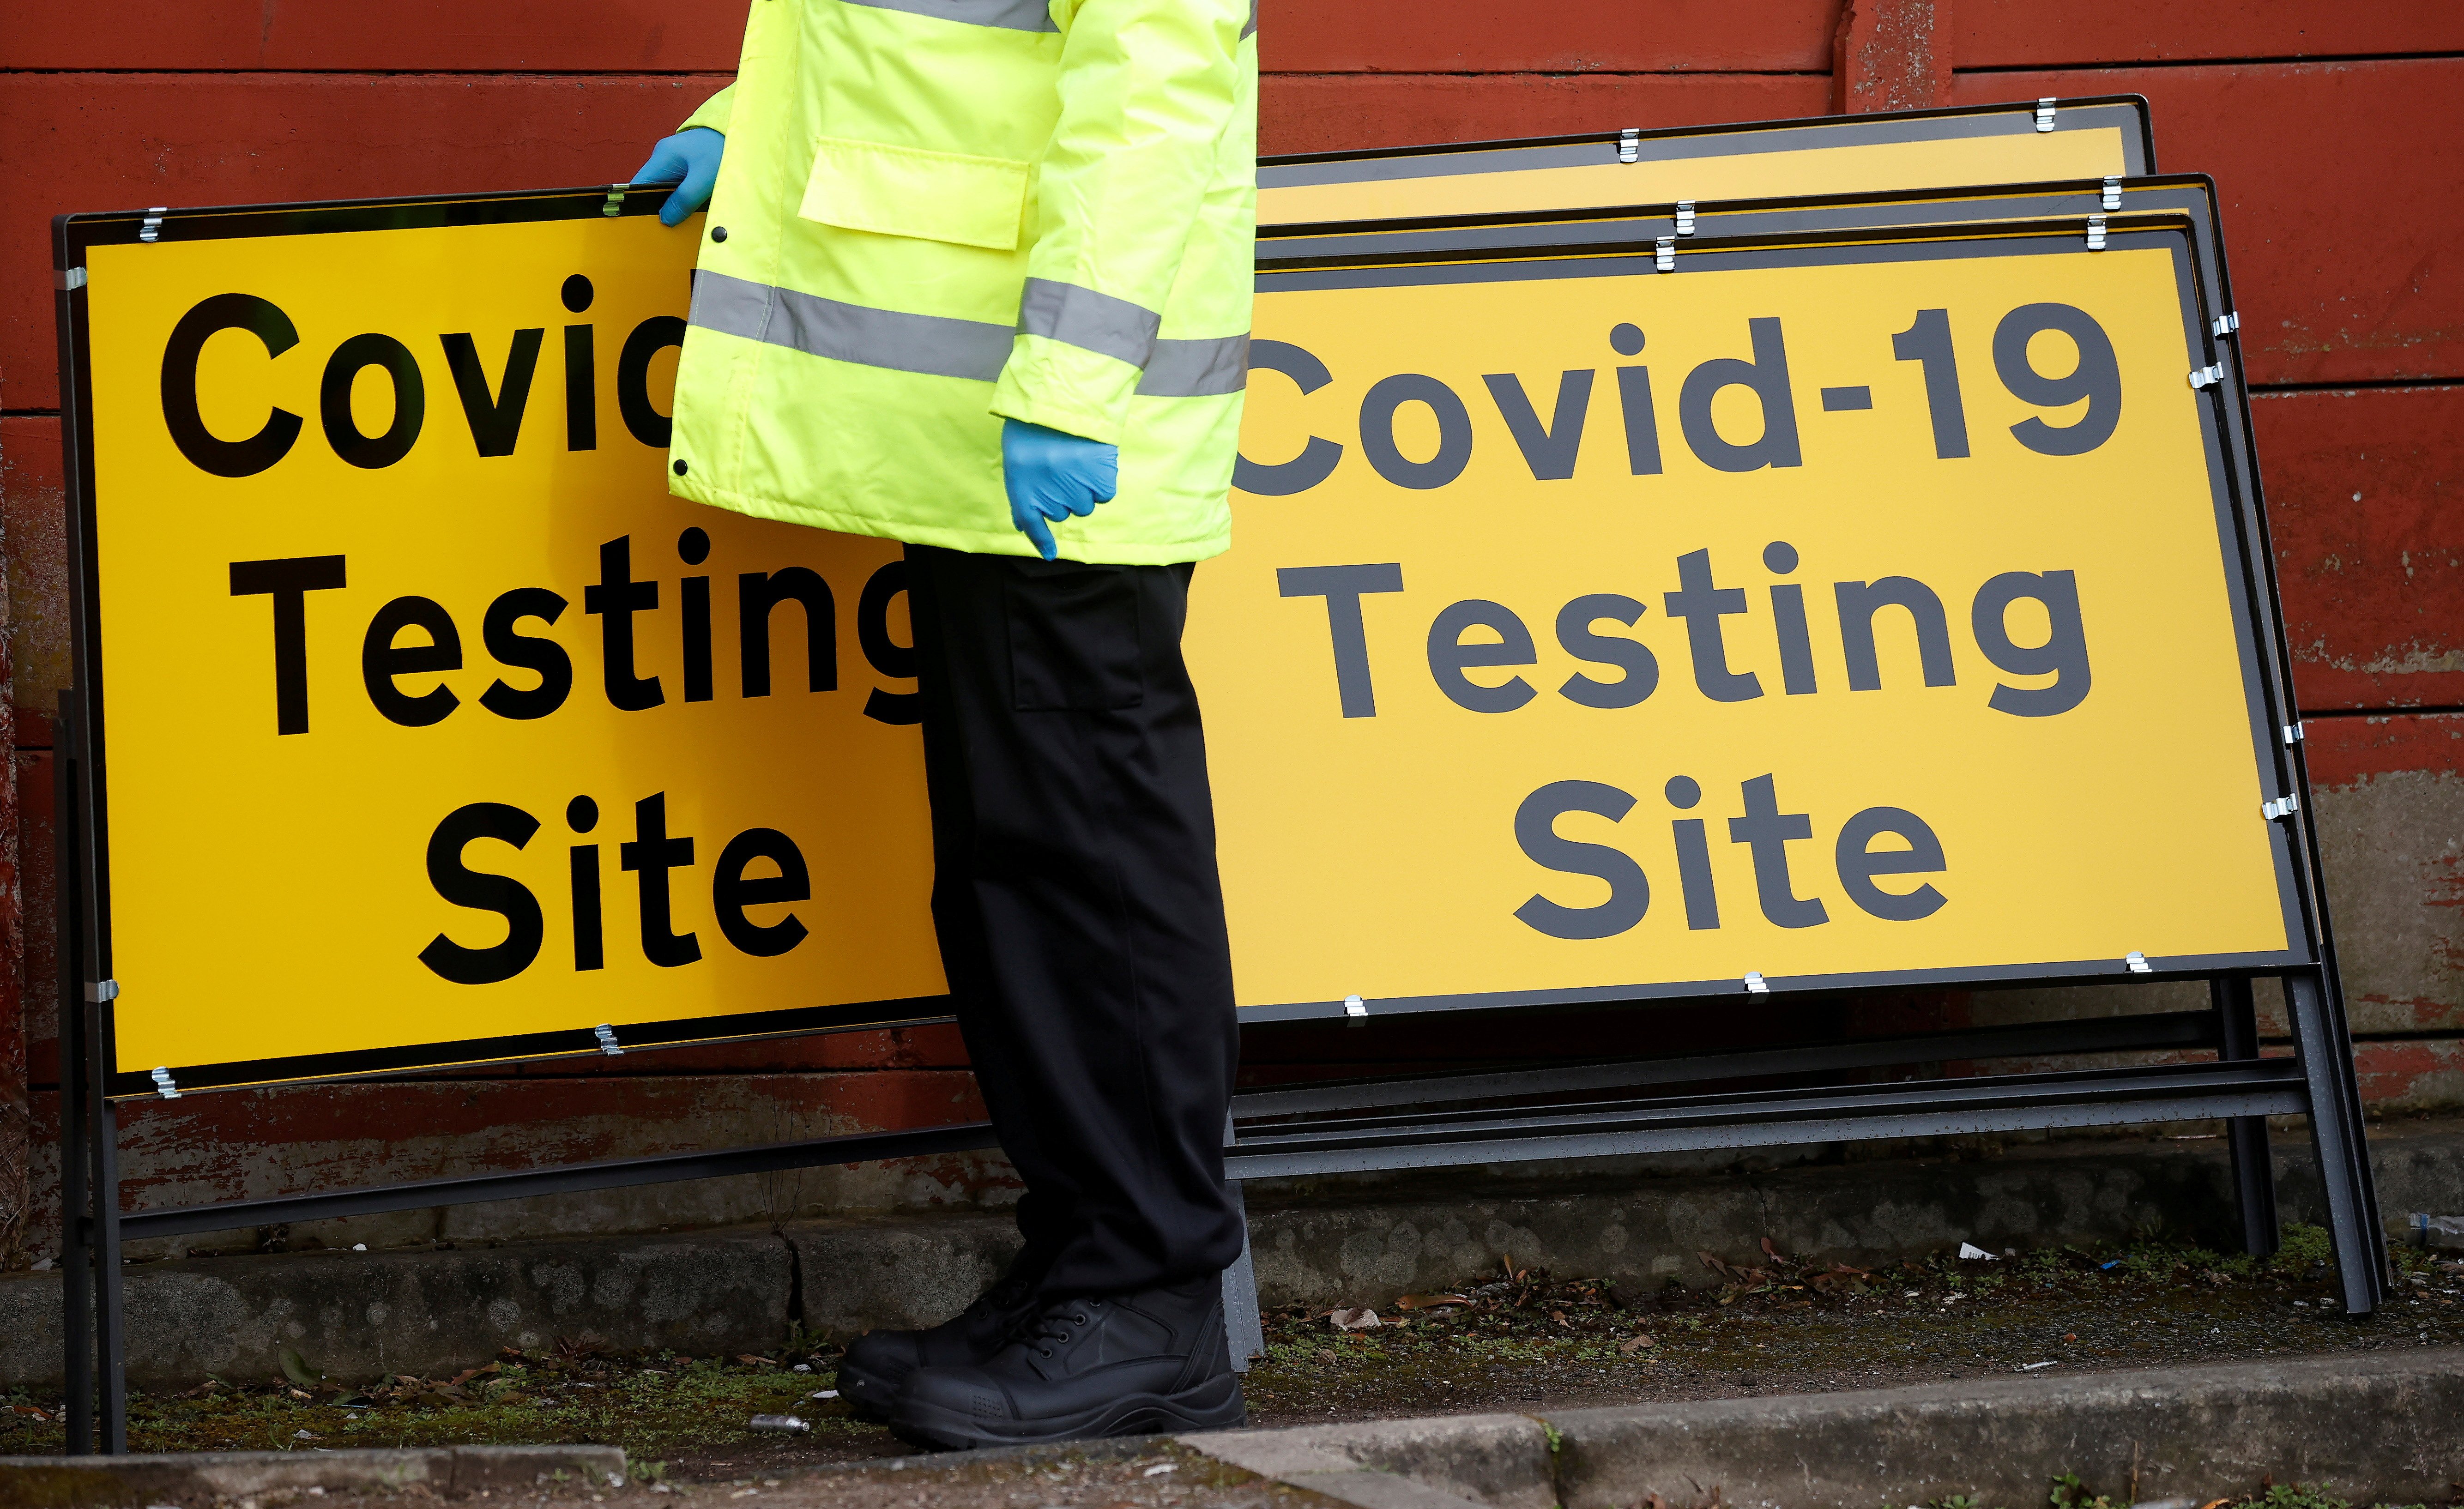 A member of NHS Test and Trace staff sets up a mobile testing centre amid the outbreak of the coronavirus disease (COVID-19) in the Moston area of Manchester, Britain, February 17, 2021. REUTERS/Phil Noble/File Photo